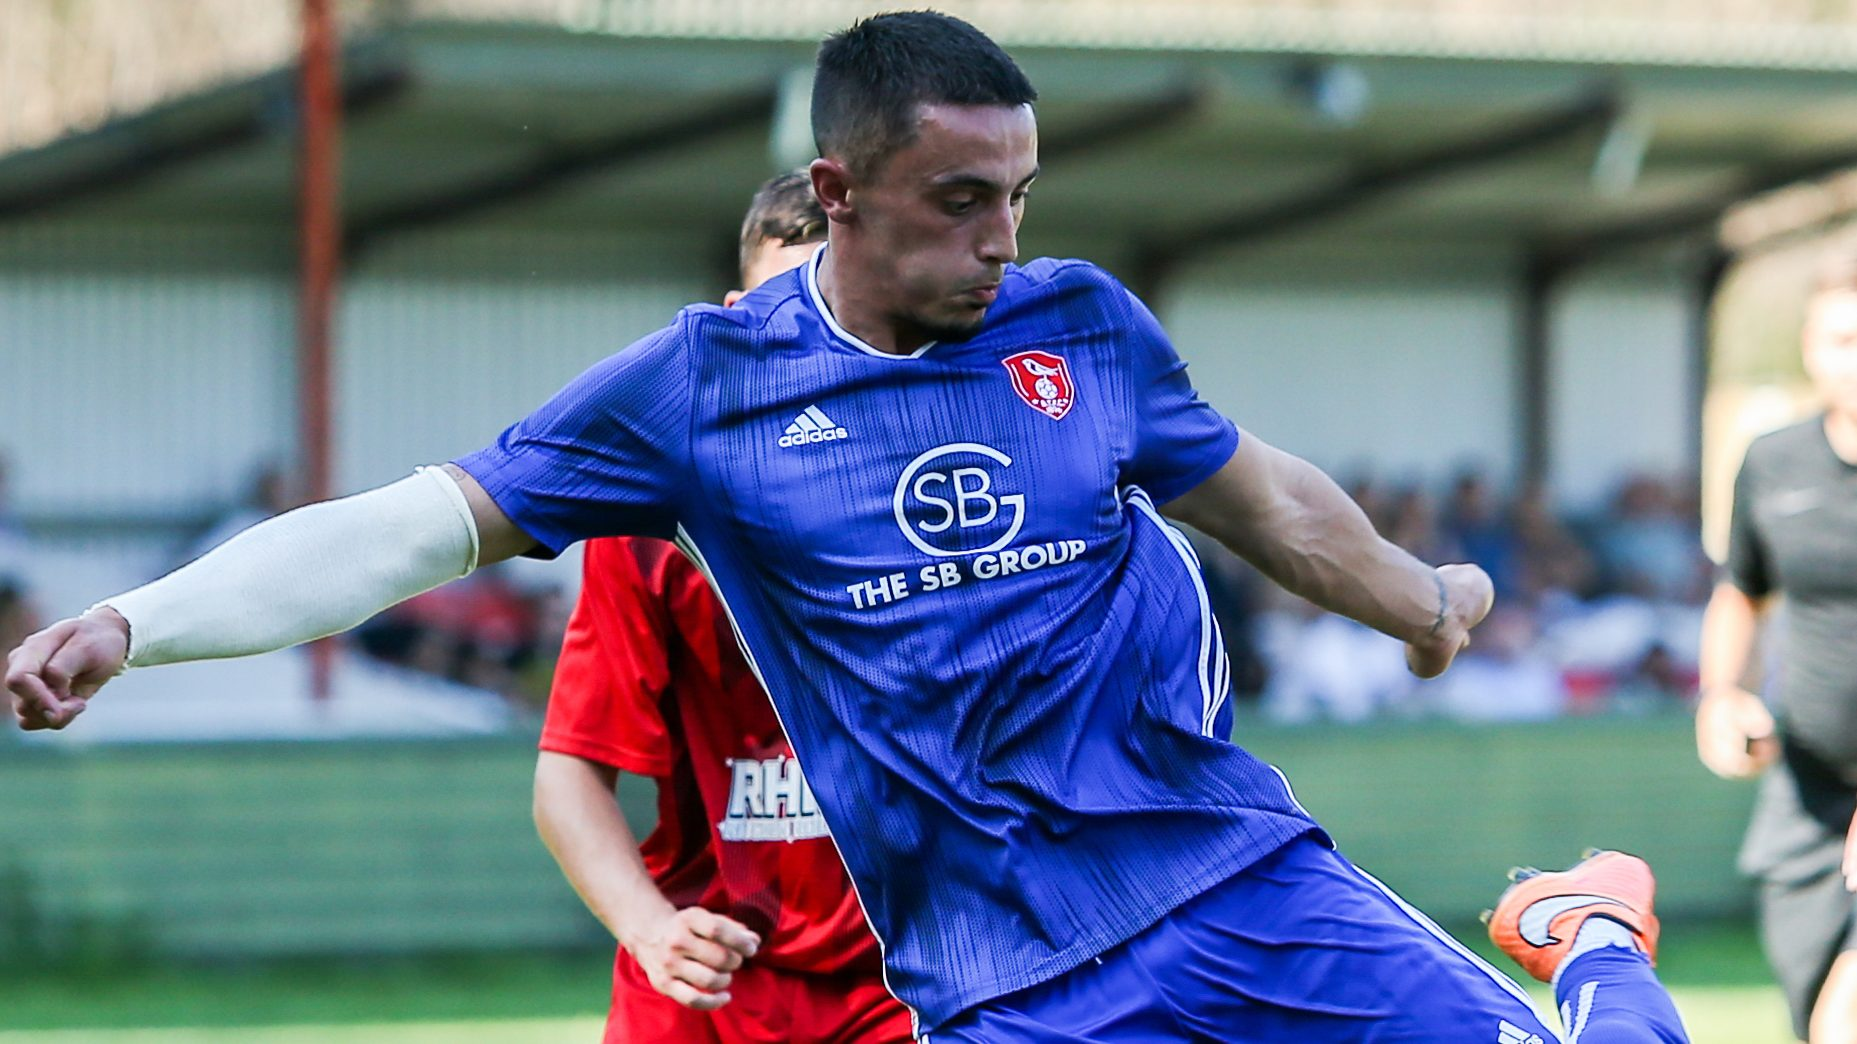 'They should be worried about us' says Bracknell Town boss